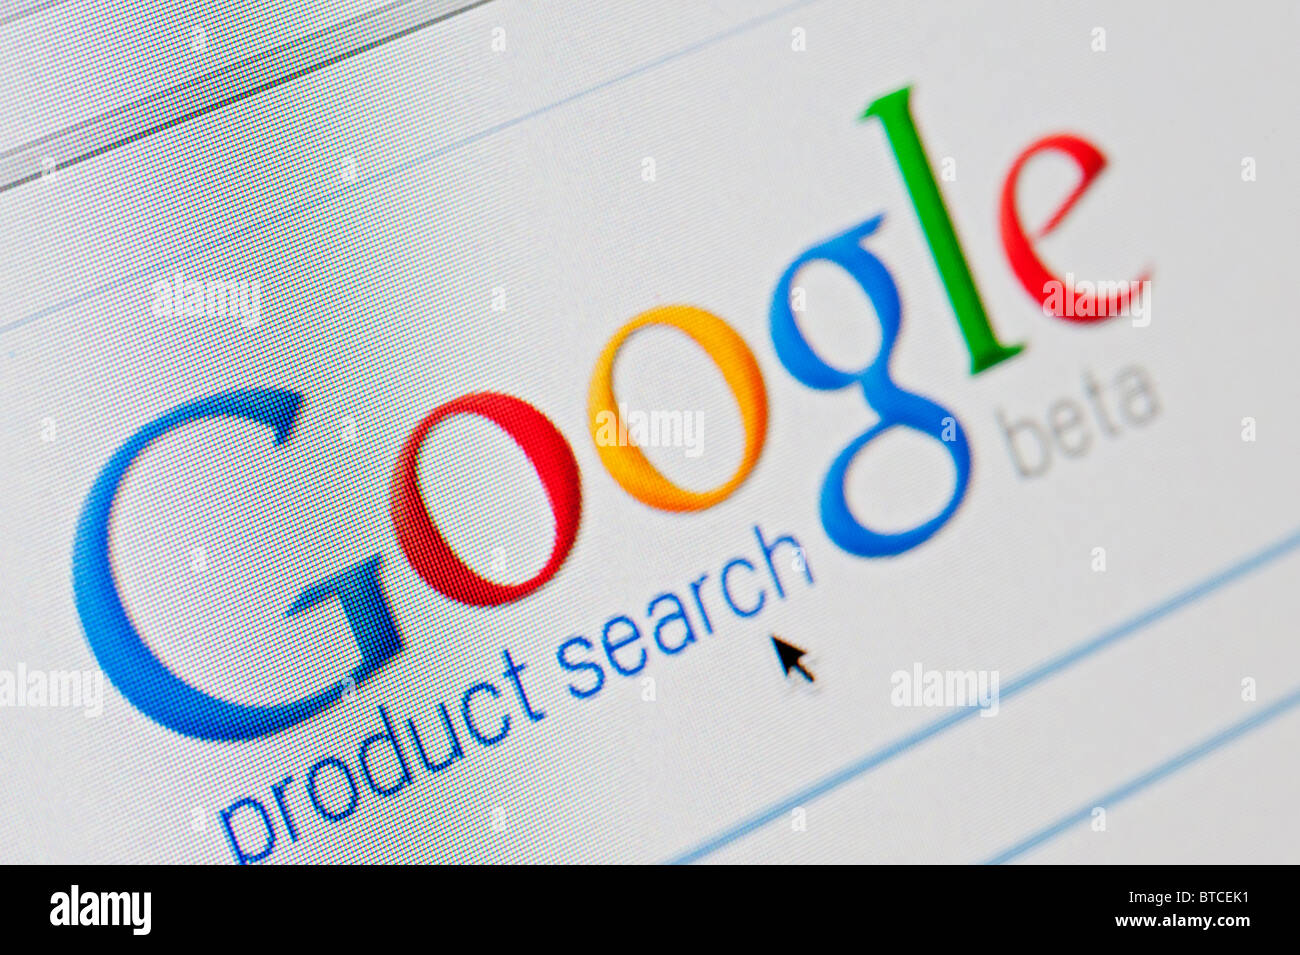 Screenshot from homepage of Google Product Search internet search engine - Stock Image